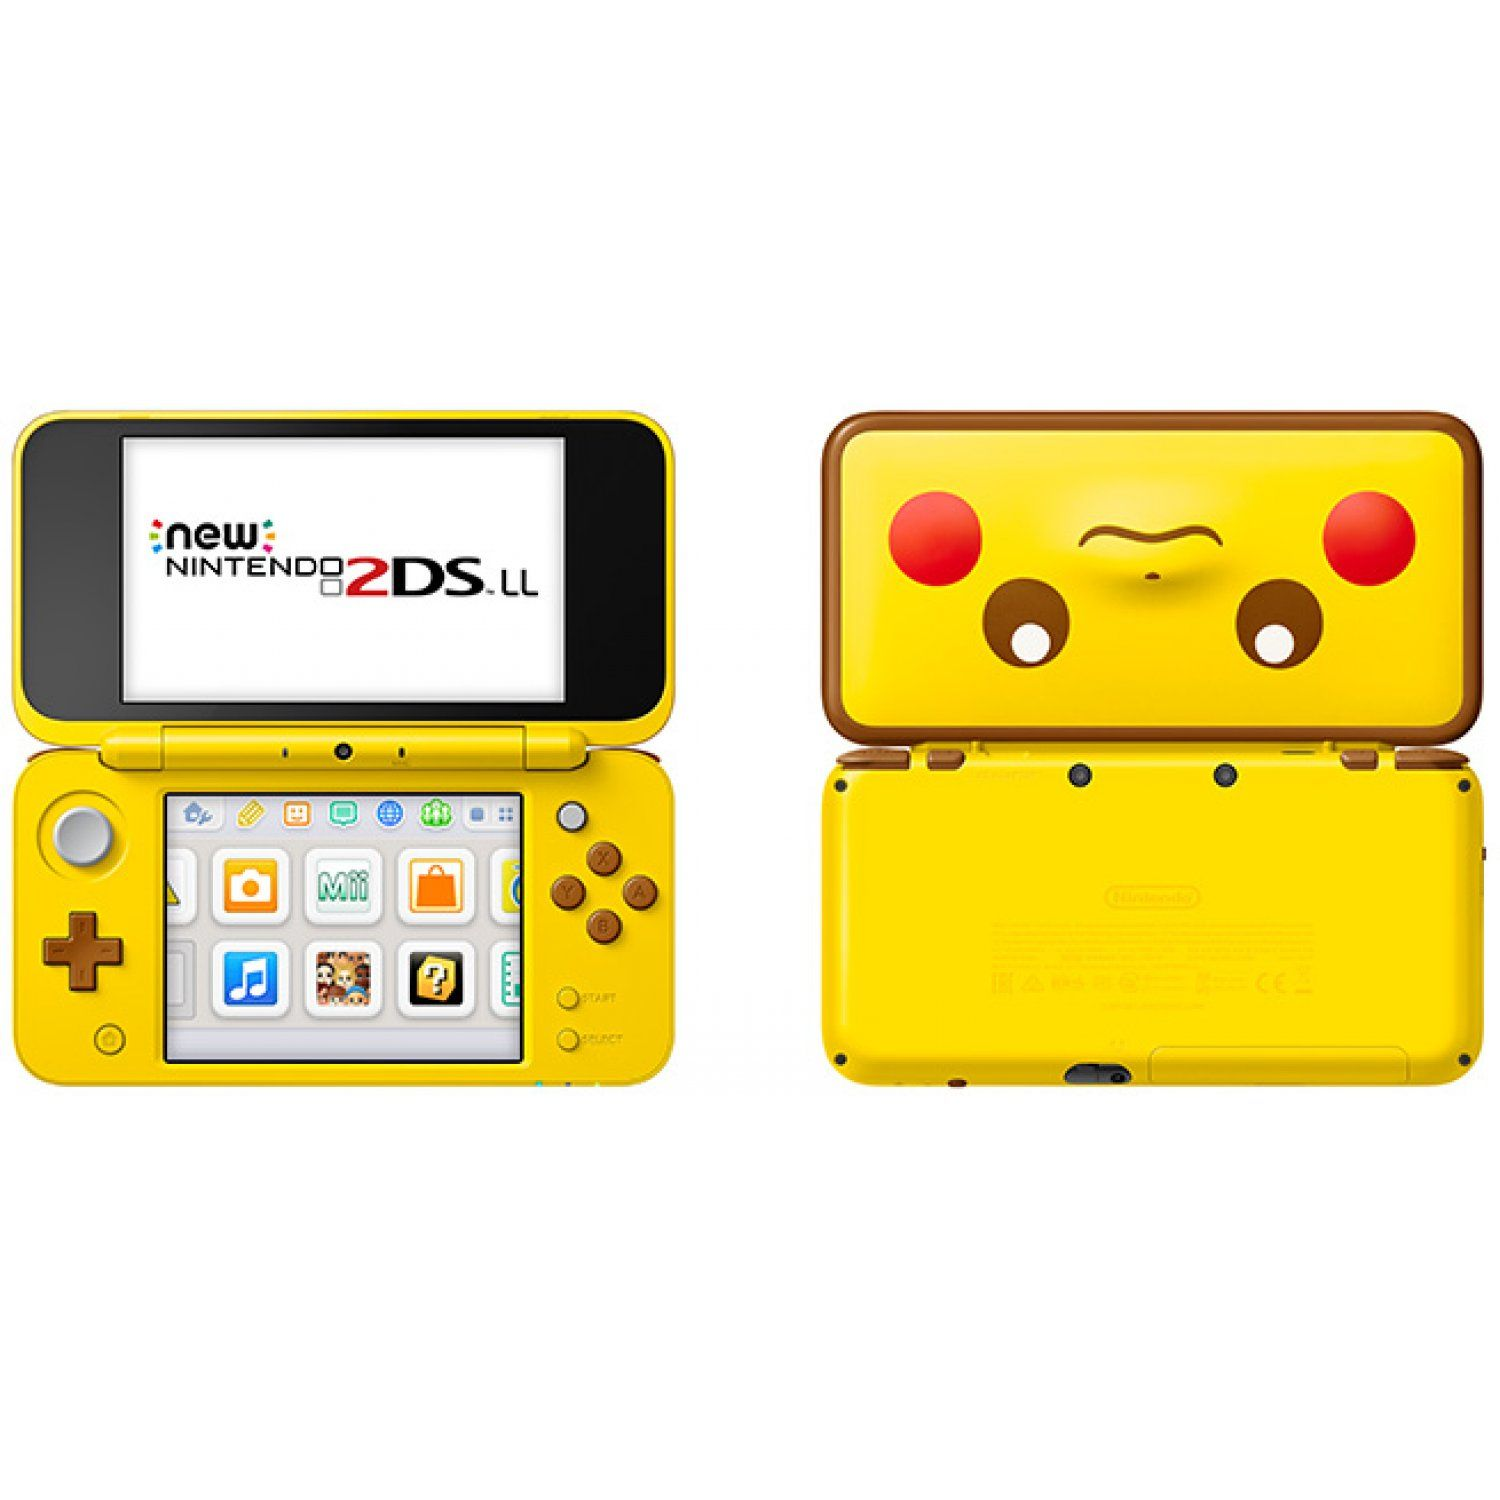 New Nintendo 2DS LL [Pikachu Edition] | Nintendo 3ds ...